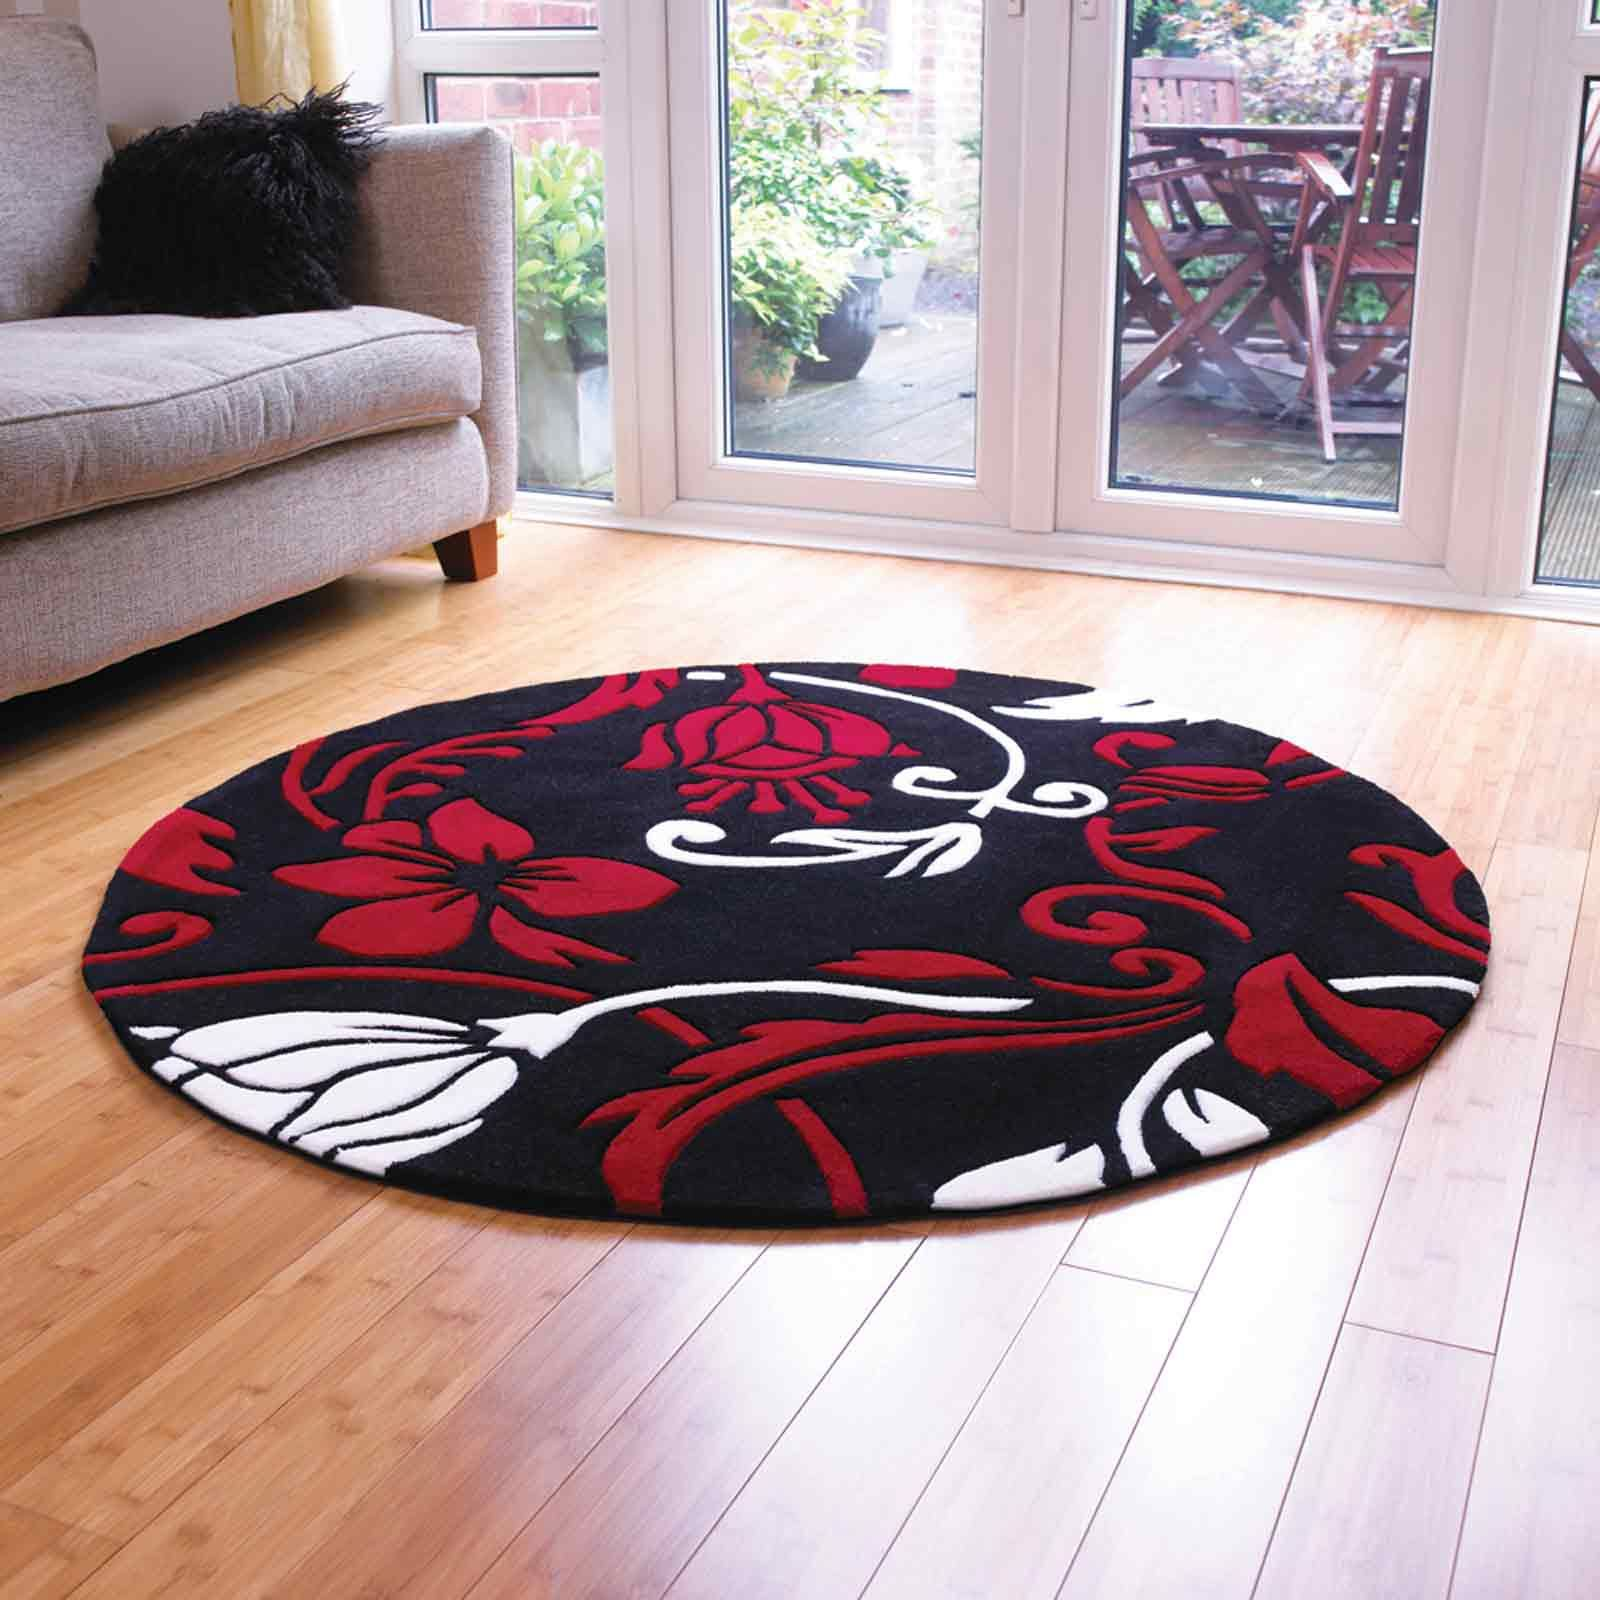 Pin On Circular Rugs